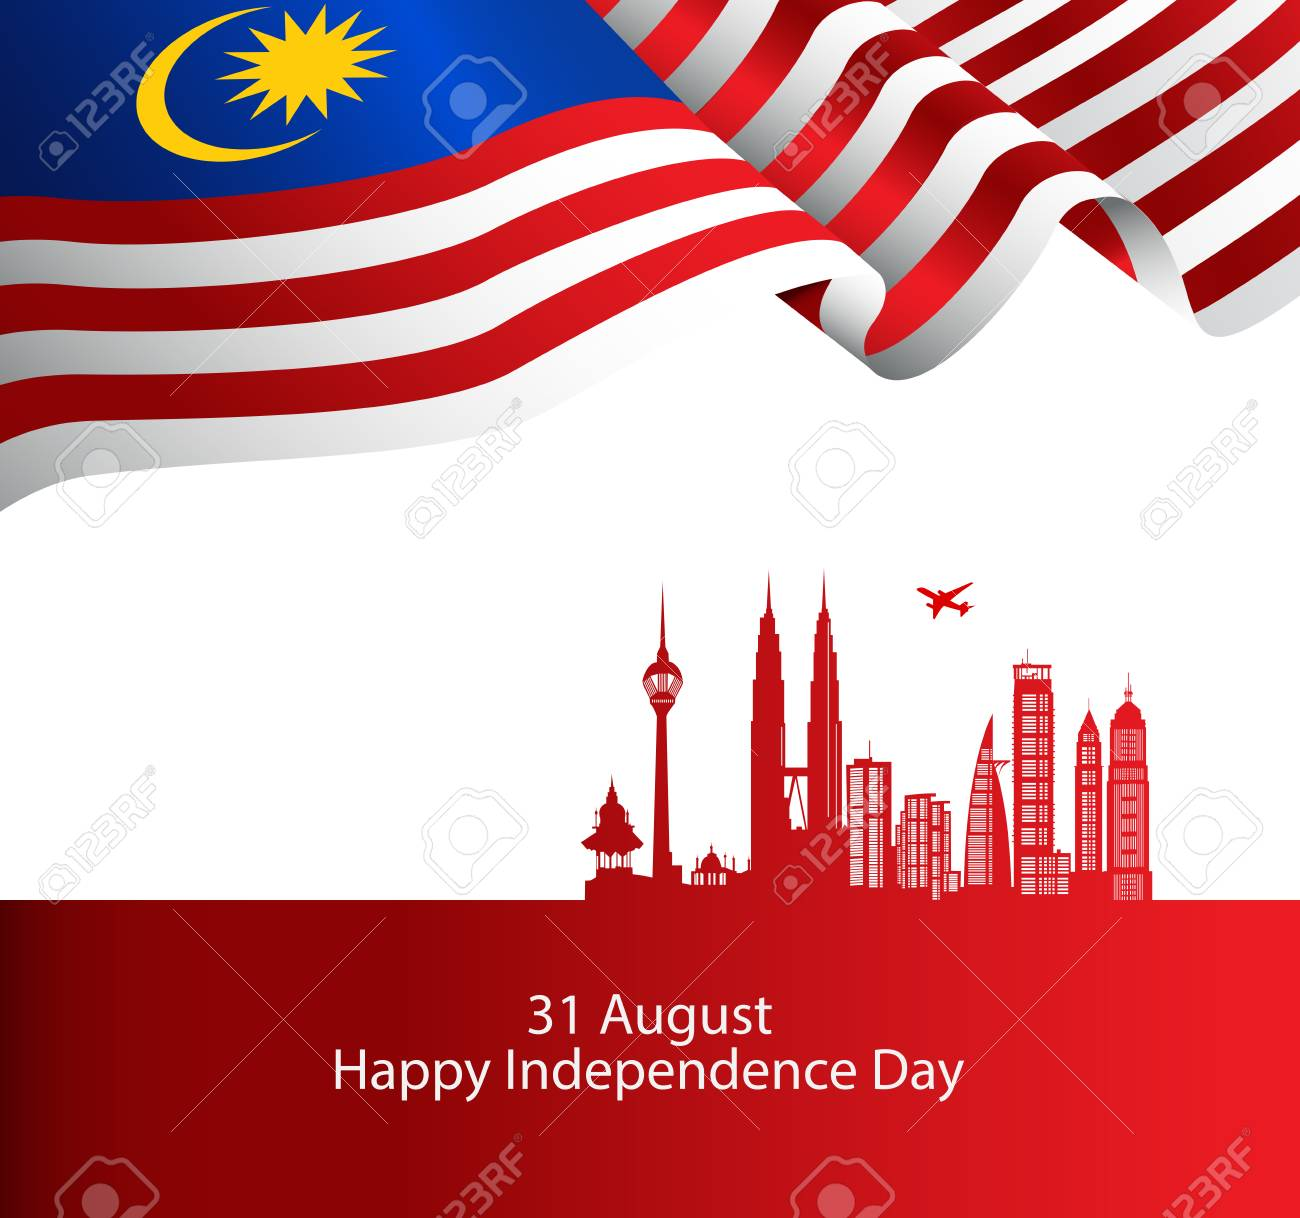 Malaysia brochure cover vector, independence day. Malaysia National Day. graphic for design element - 105399892